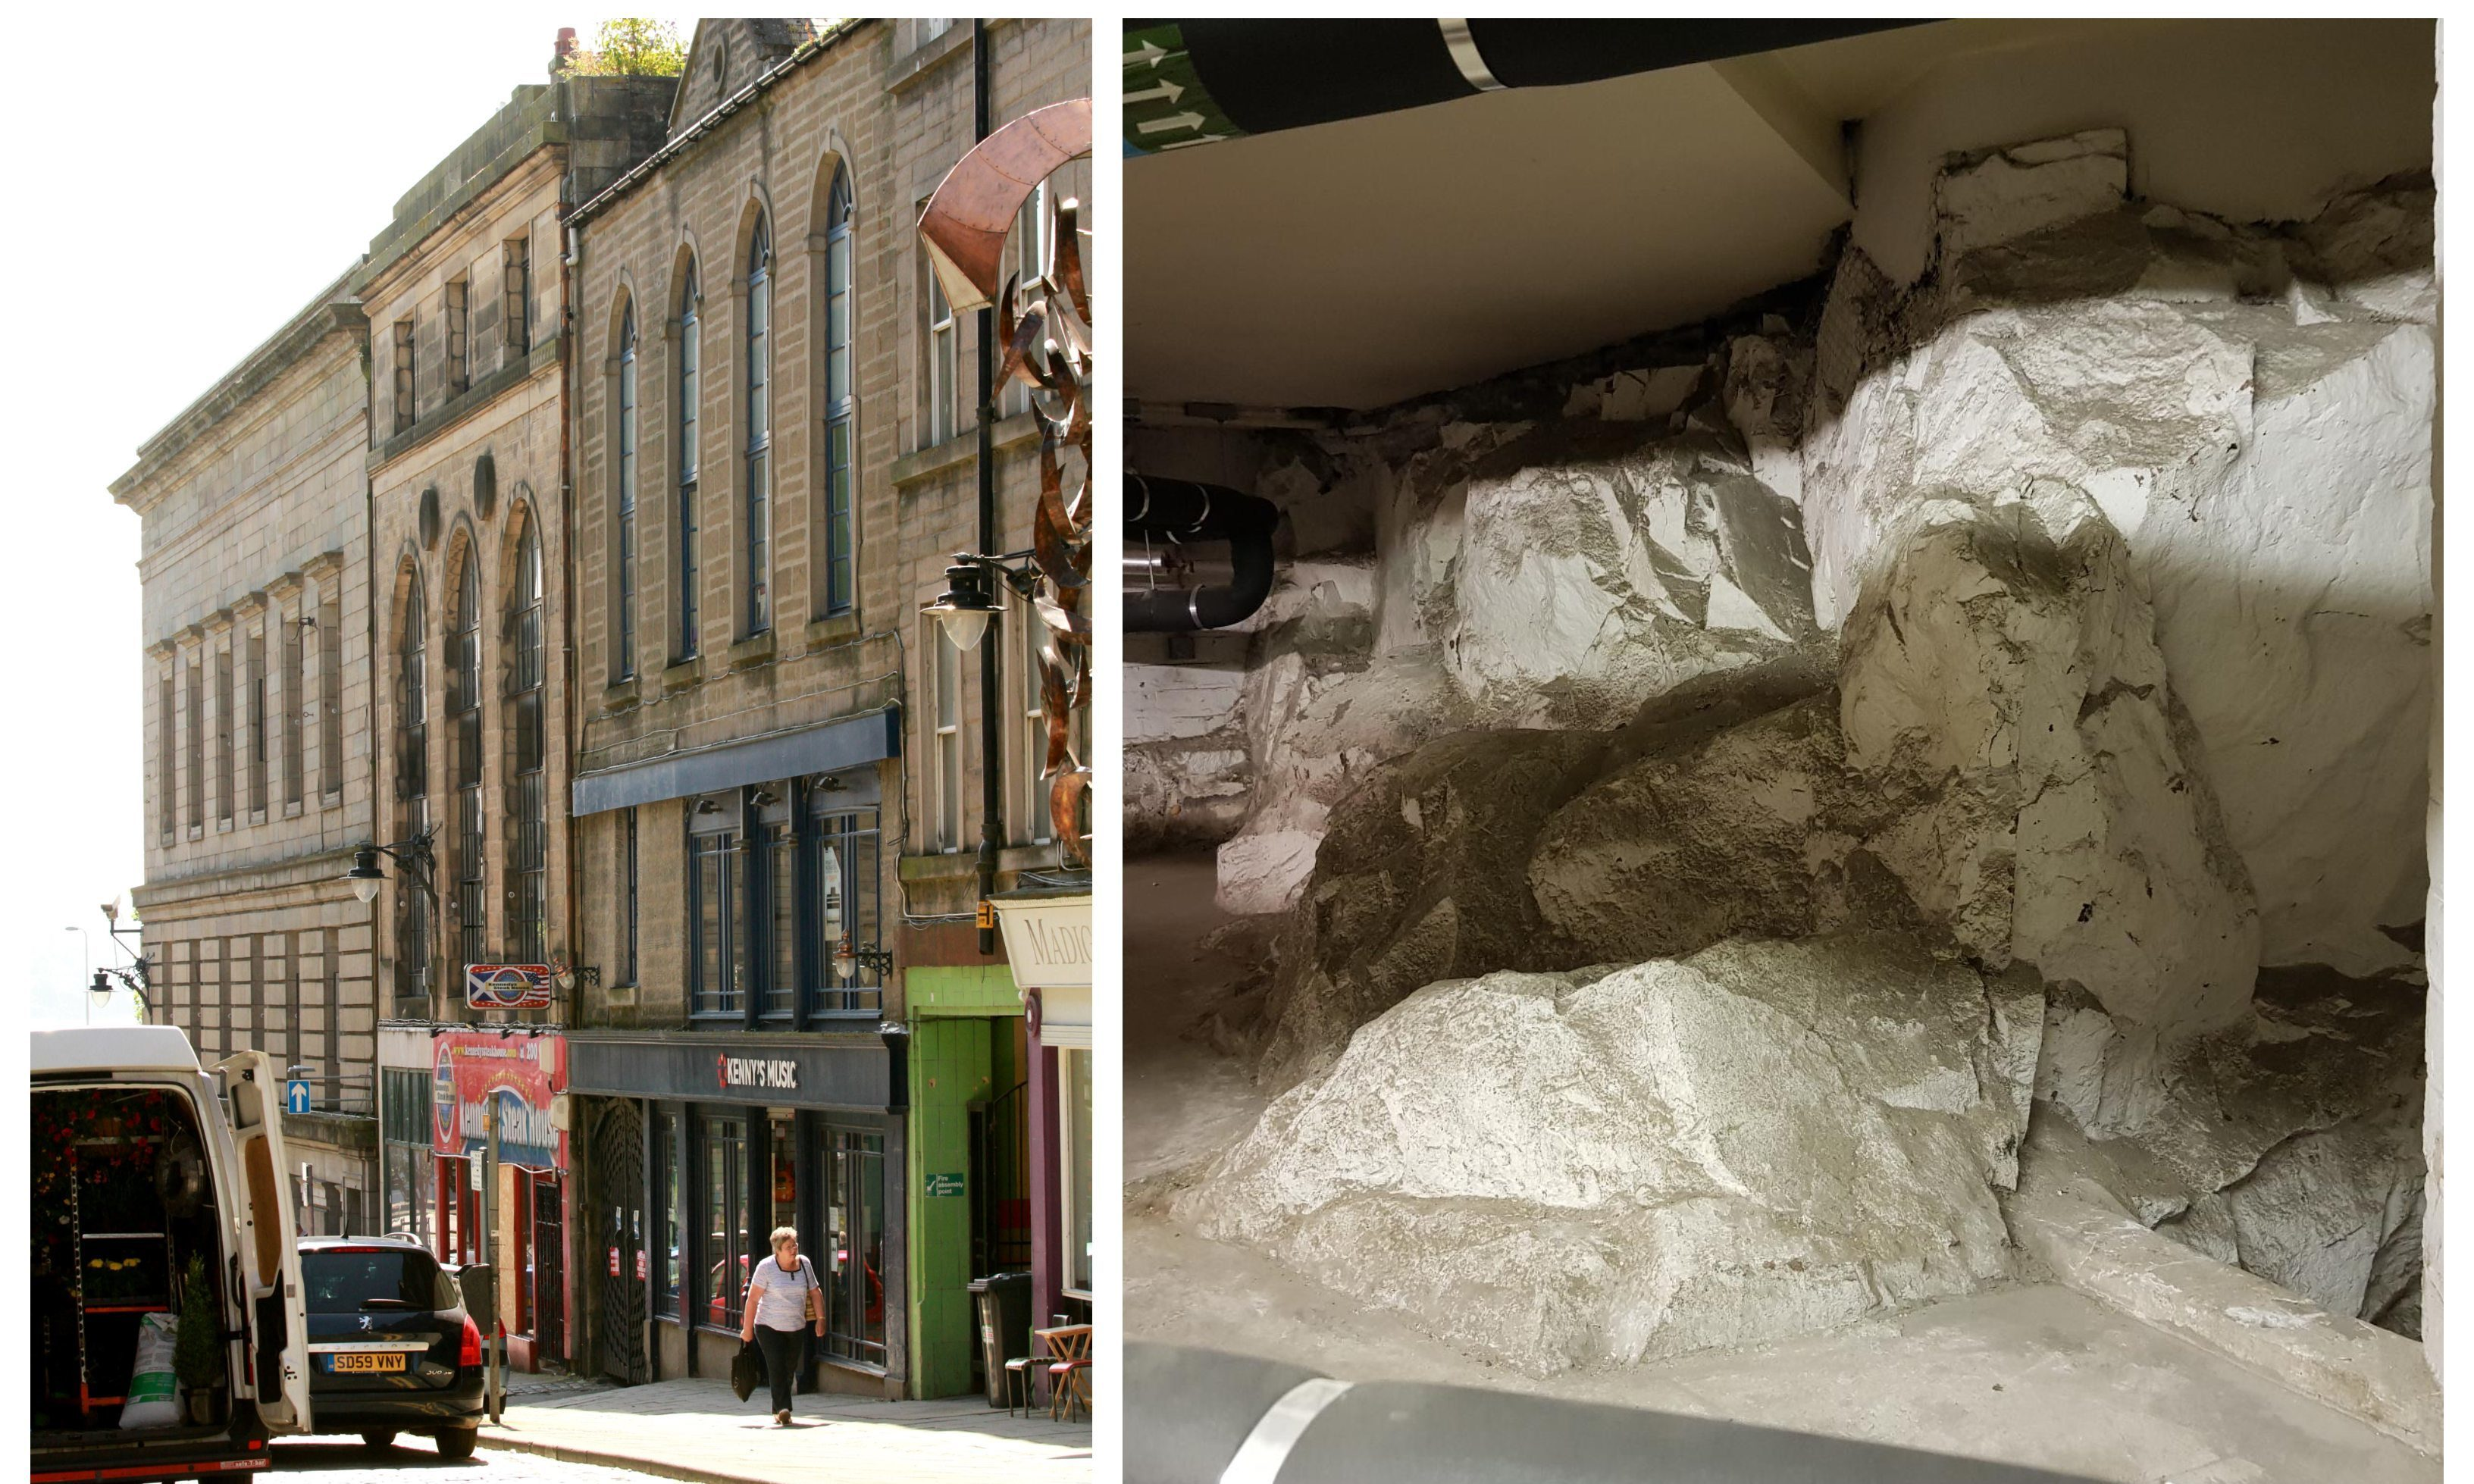 The remains of the historic building were unearthed on Castle Street.